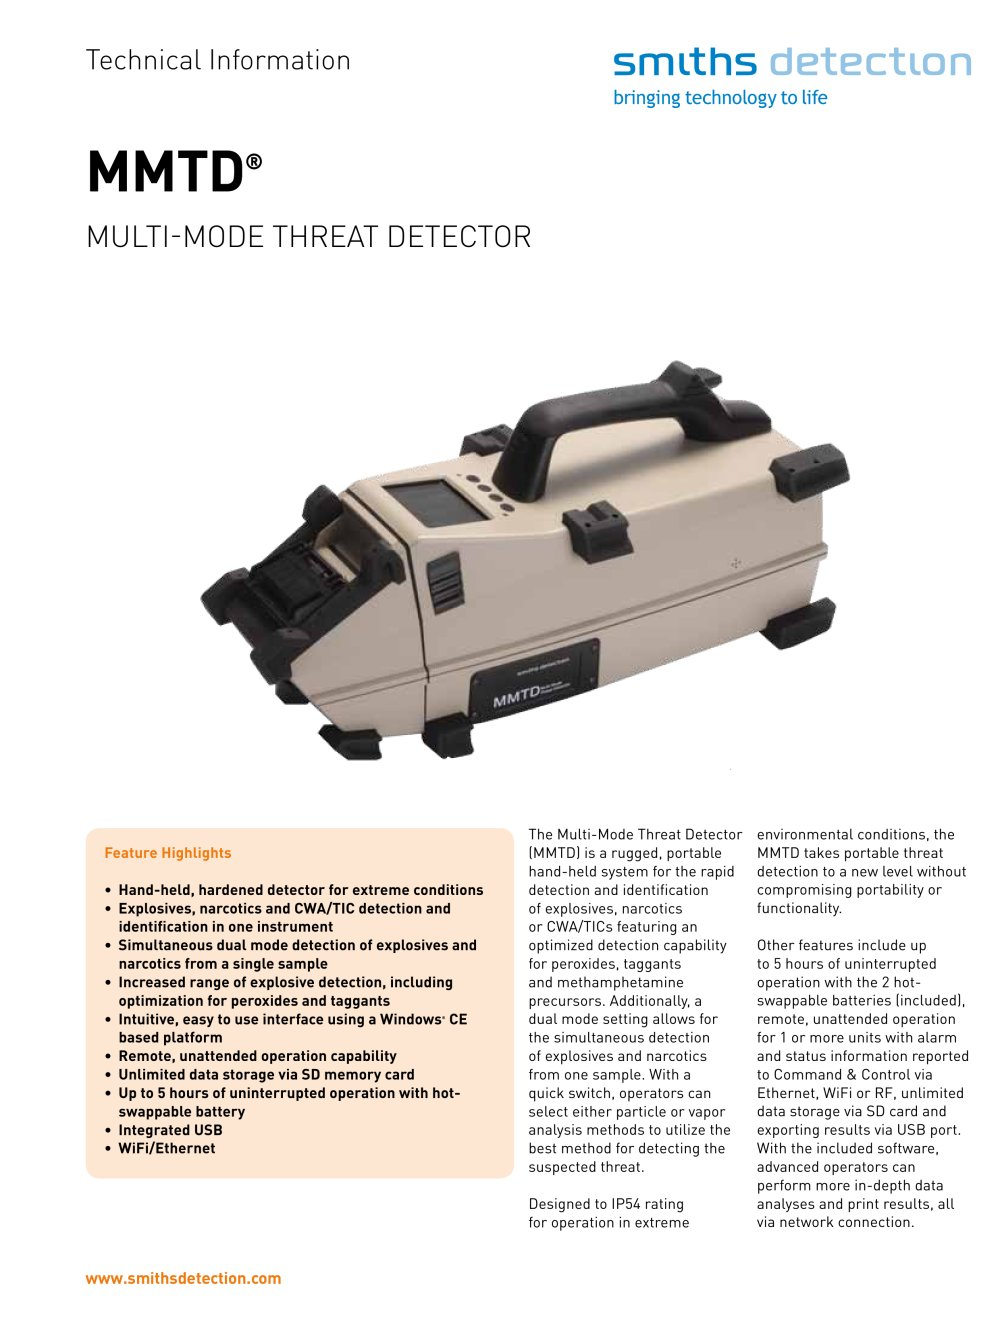 MMTD Multi-mode Threat Detector - 1 / 2 Pages